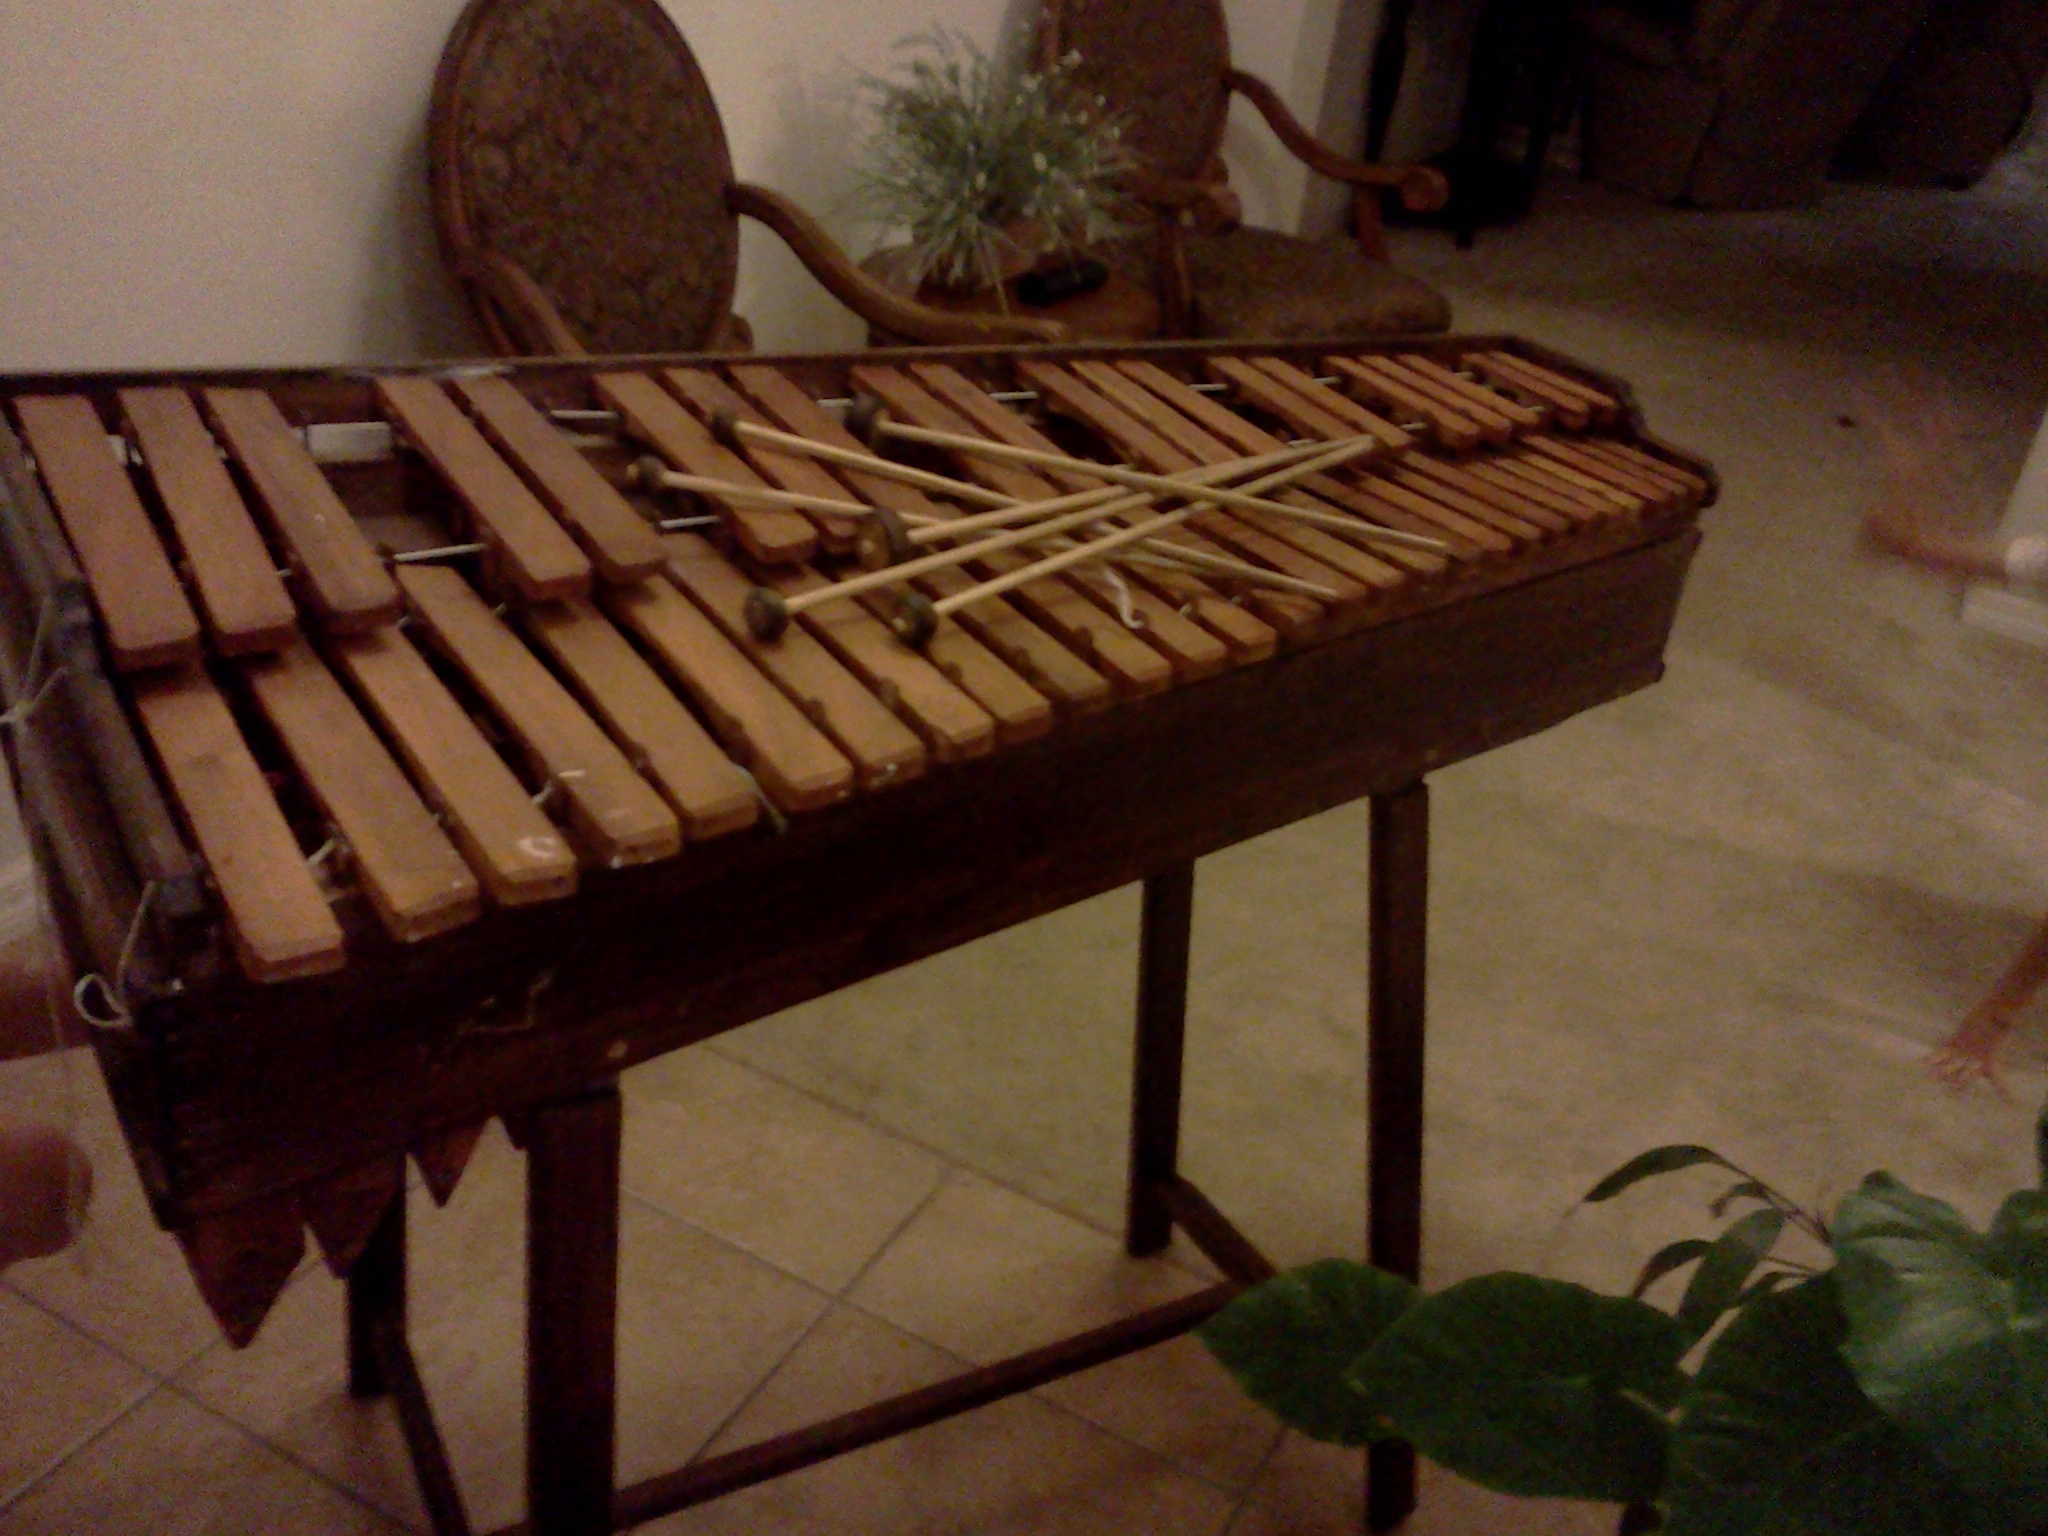 Looking for a practice marimba! Where can I find a website with used musical instruments like ebay.?